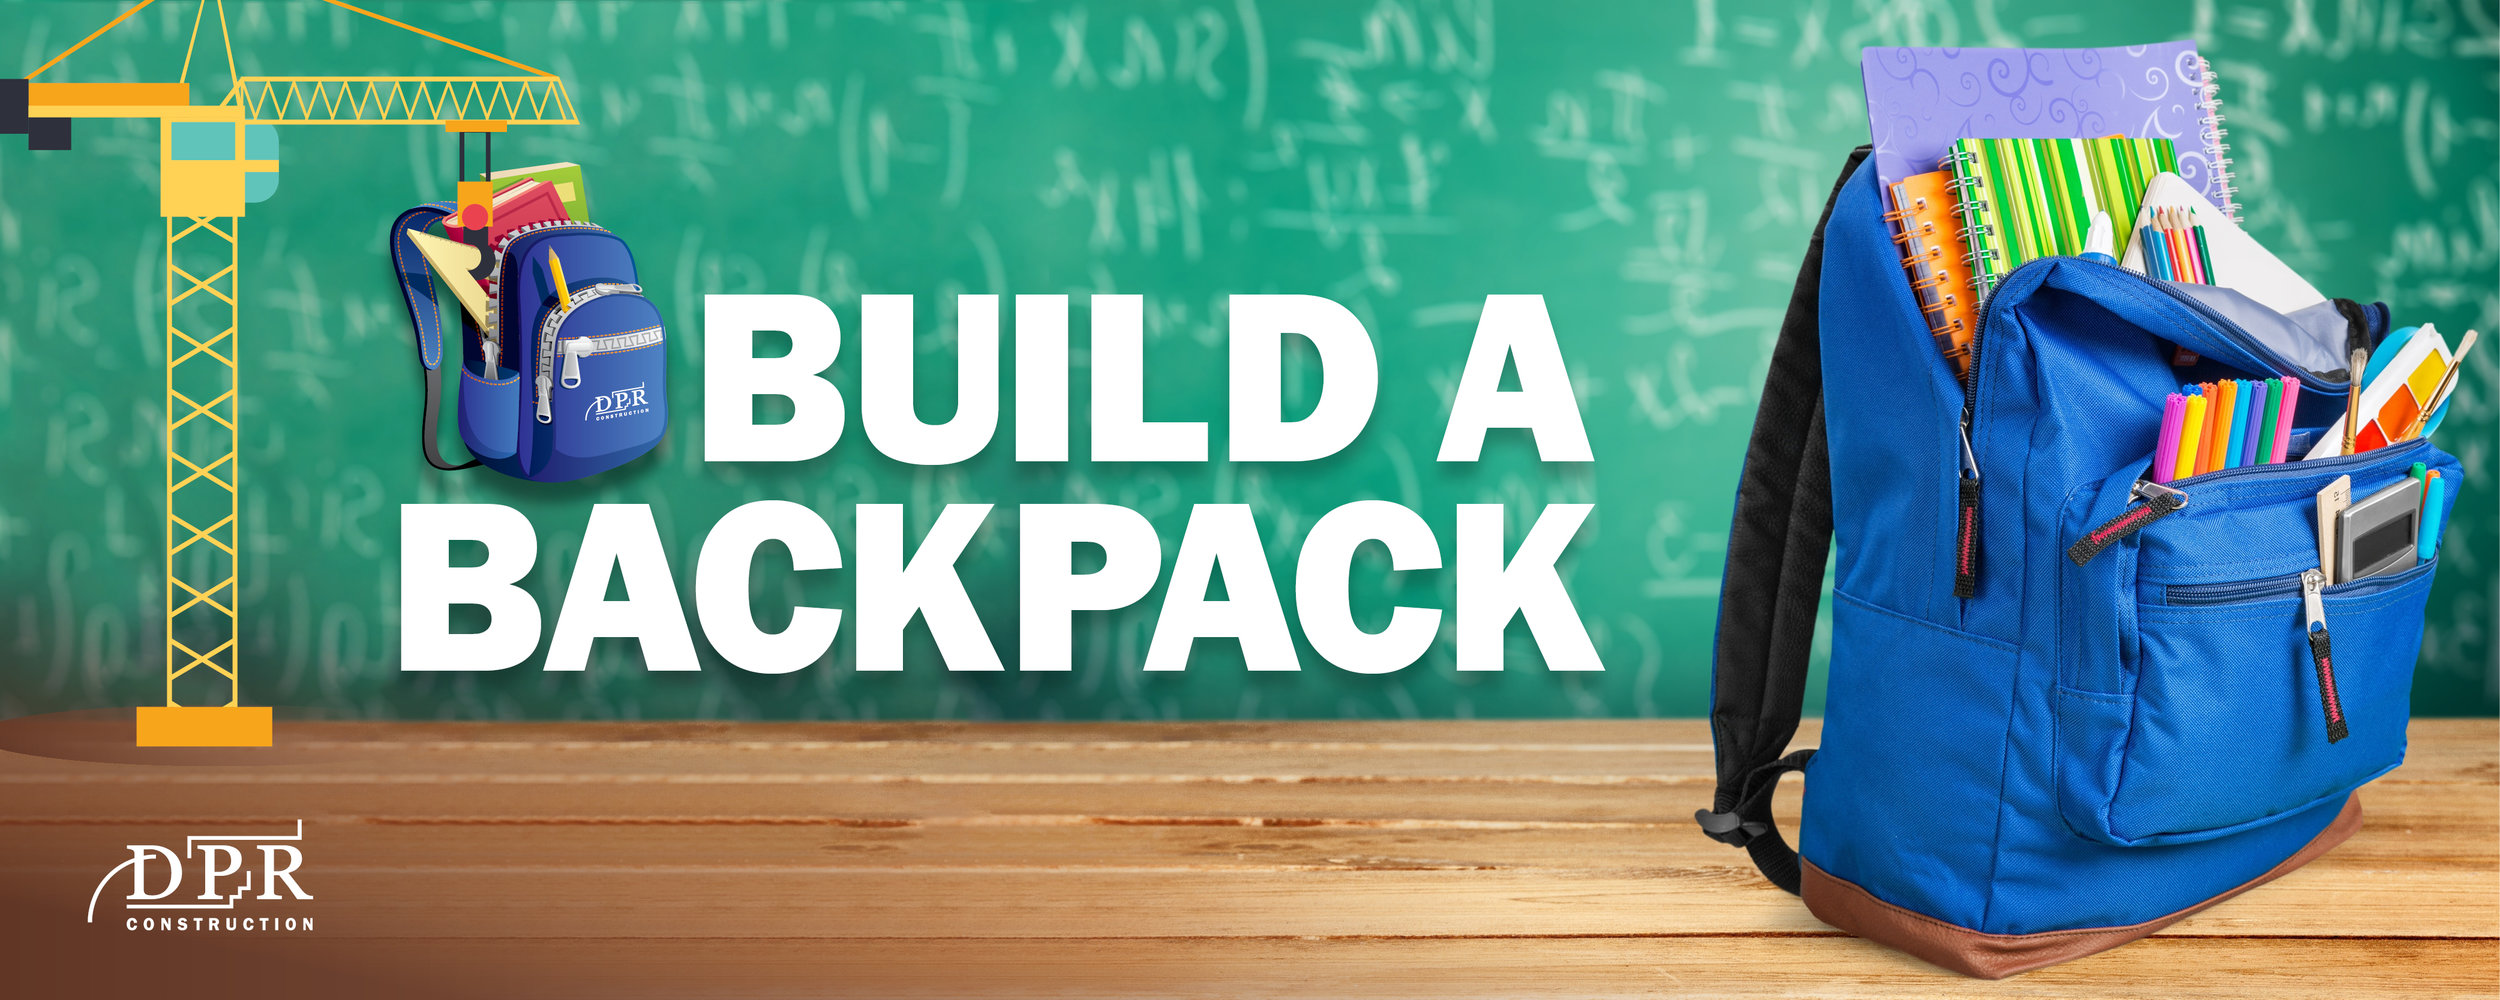 Build a Backpack Graphic.jpg